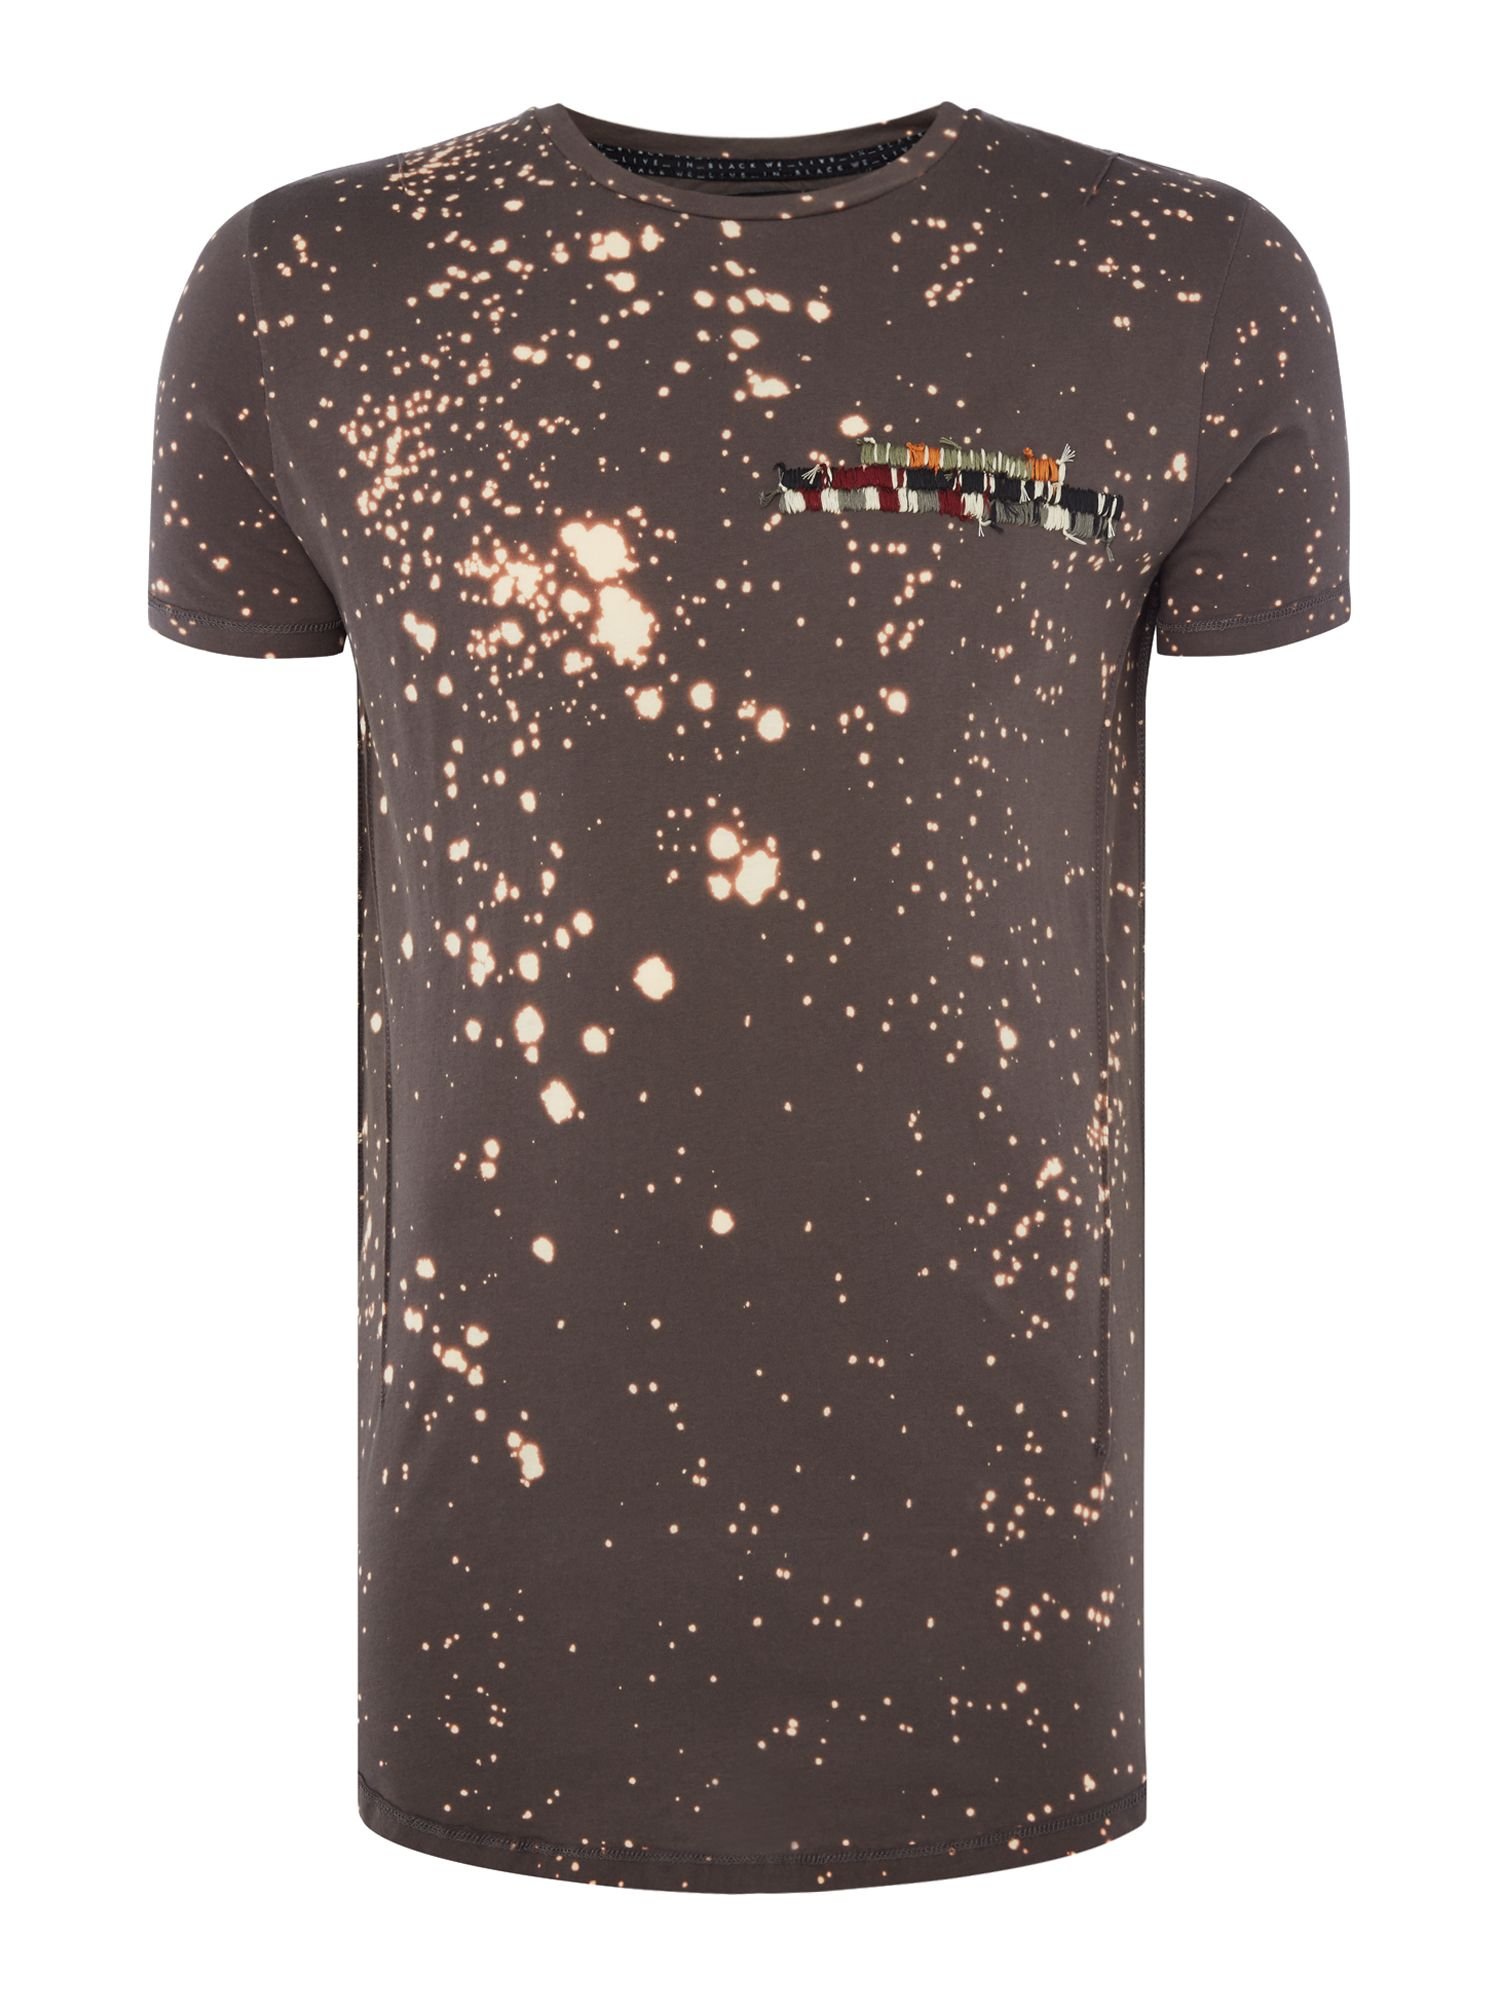 Men's Religion Bleach Splatter Short Sleeve T-Shirt, Black